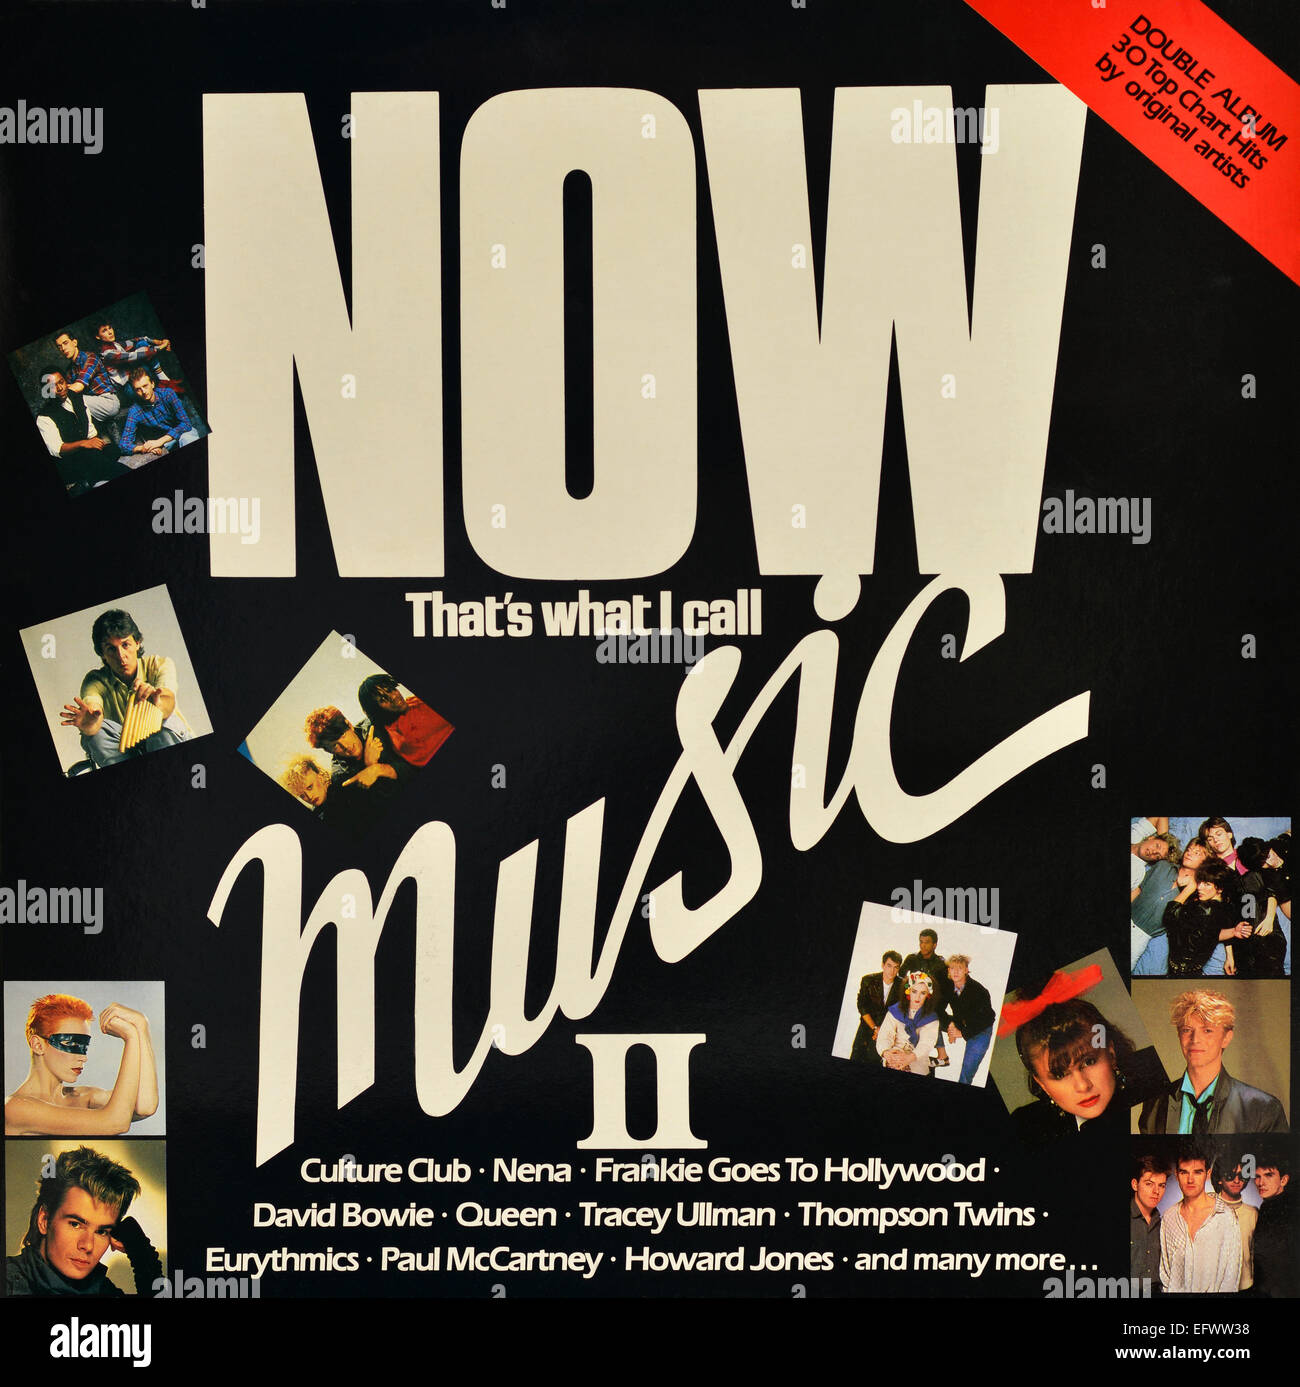 """LP vinyl album cover of """"Now That's What I Call Music 2 ..."""